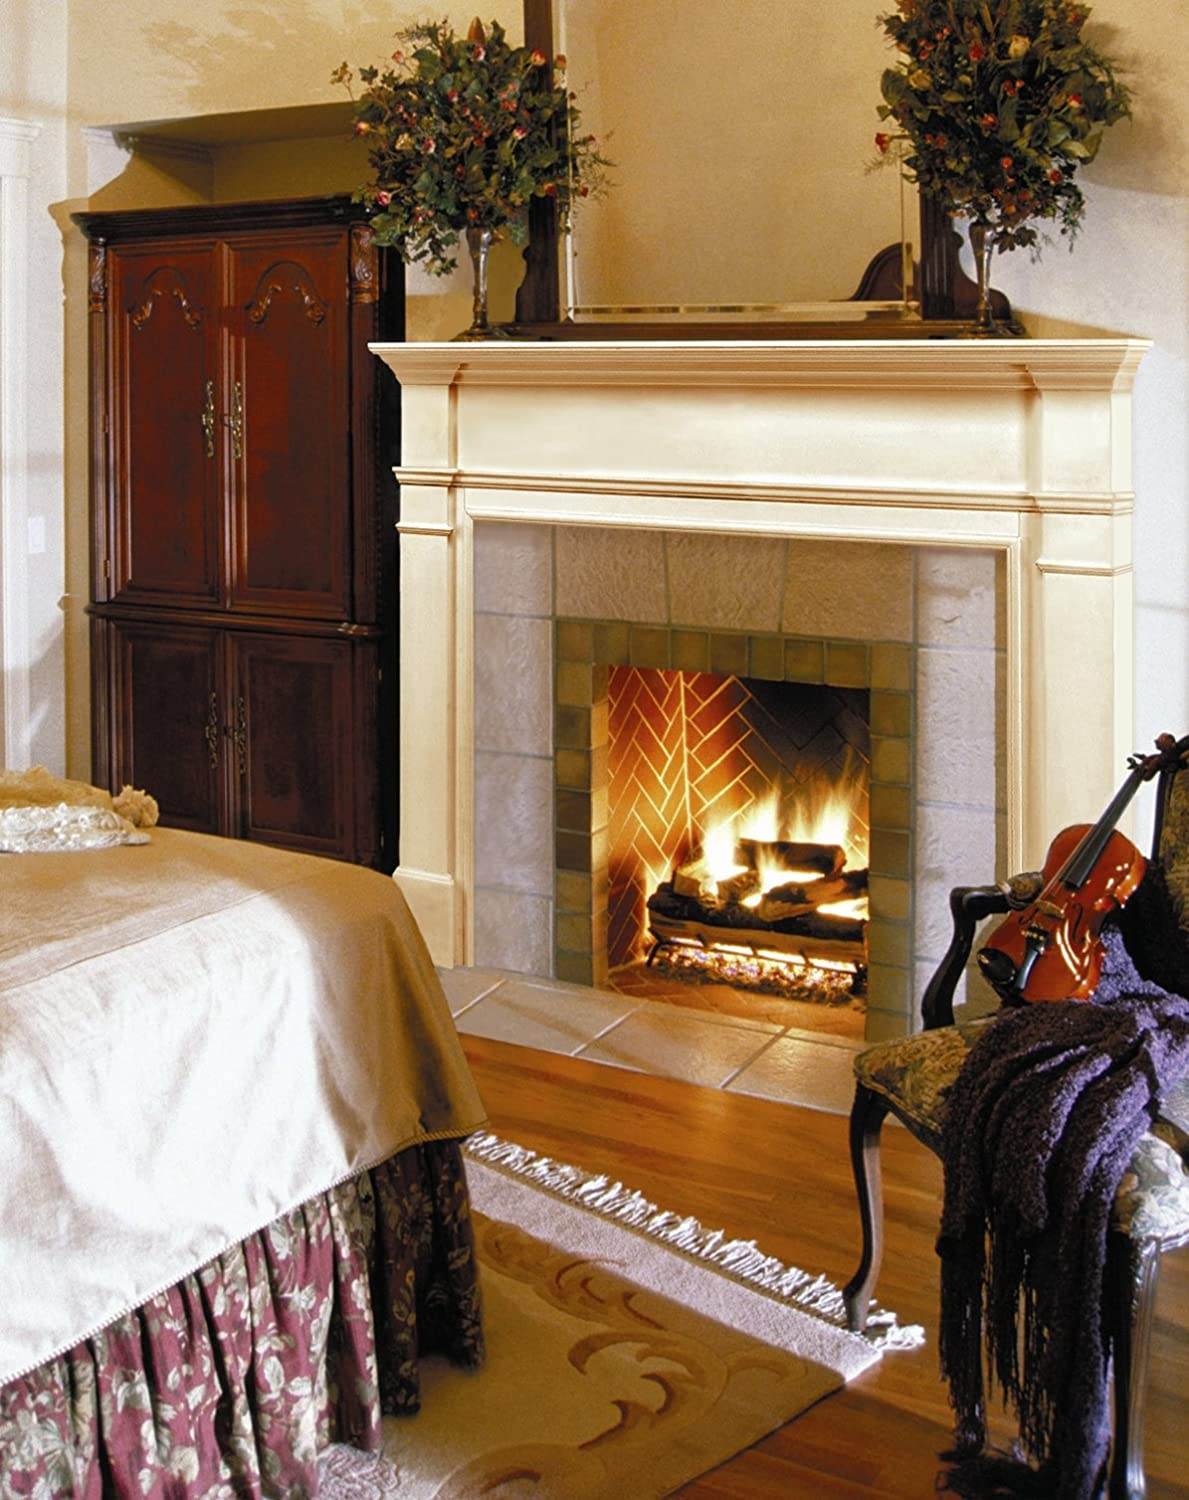 fireplace maple trim surrounds compton of mantel design fireplaces mantels less for pictures wood the front space